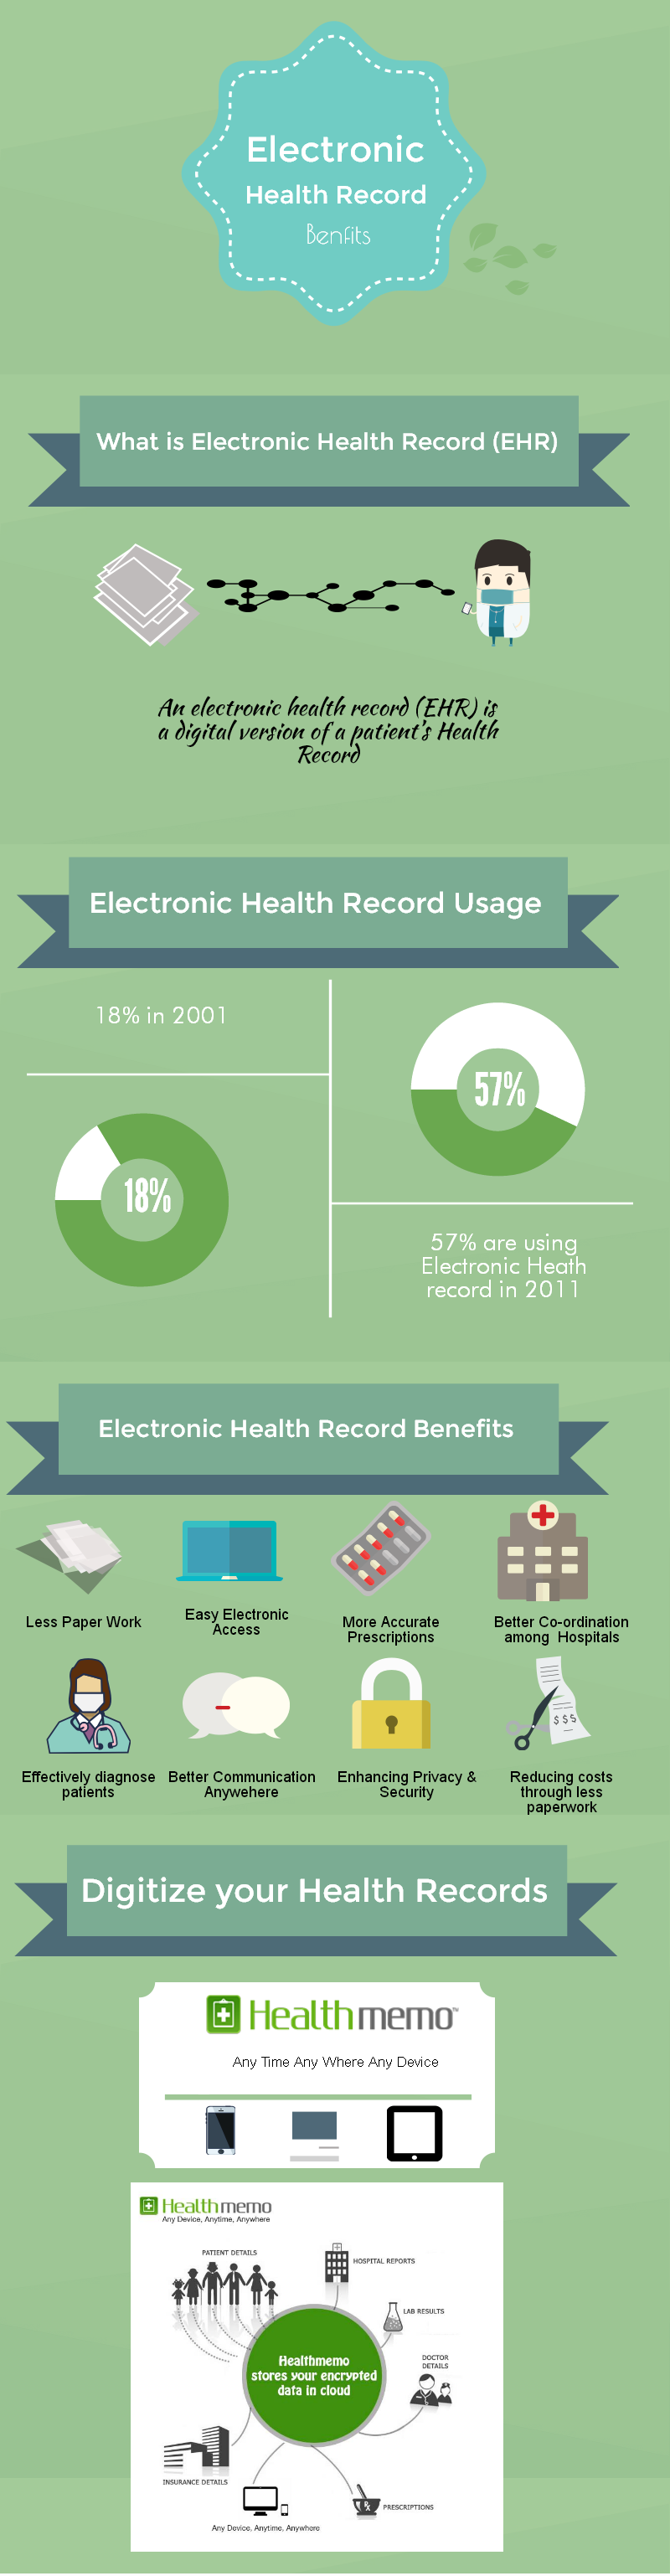 Know the uses of Electronic Health Record